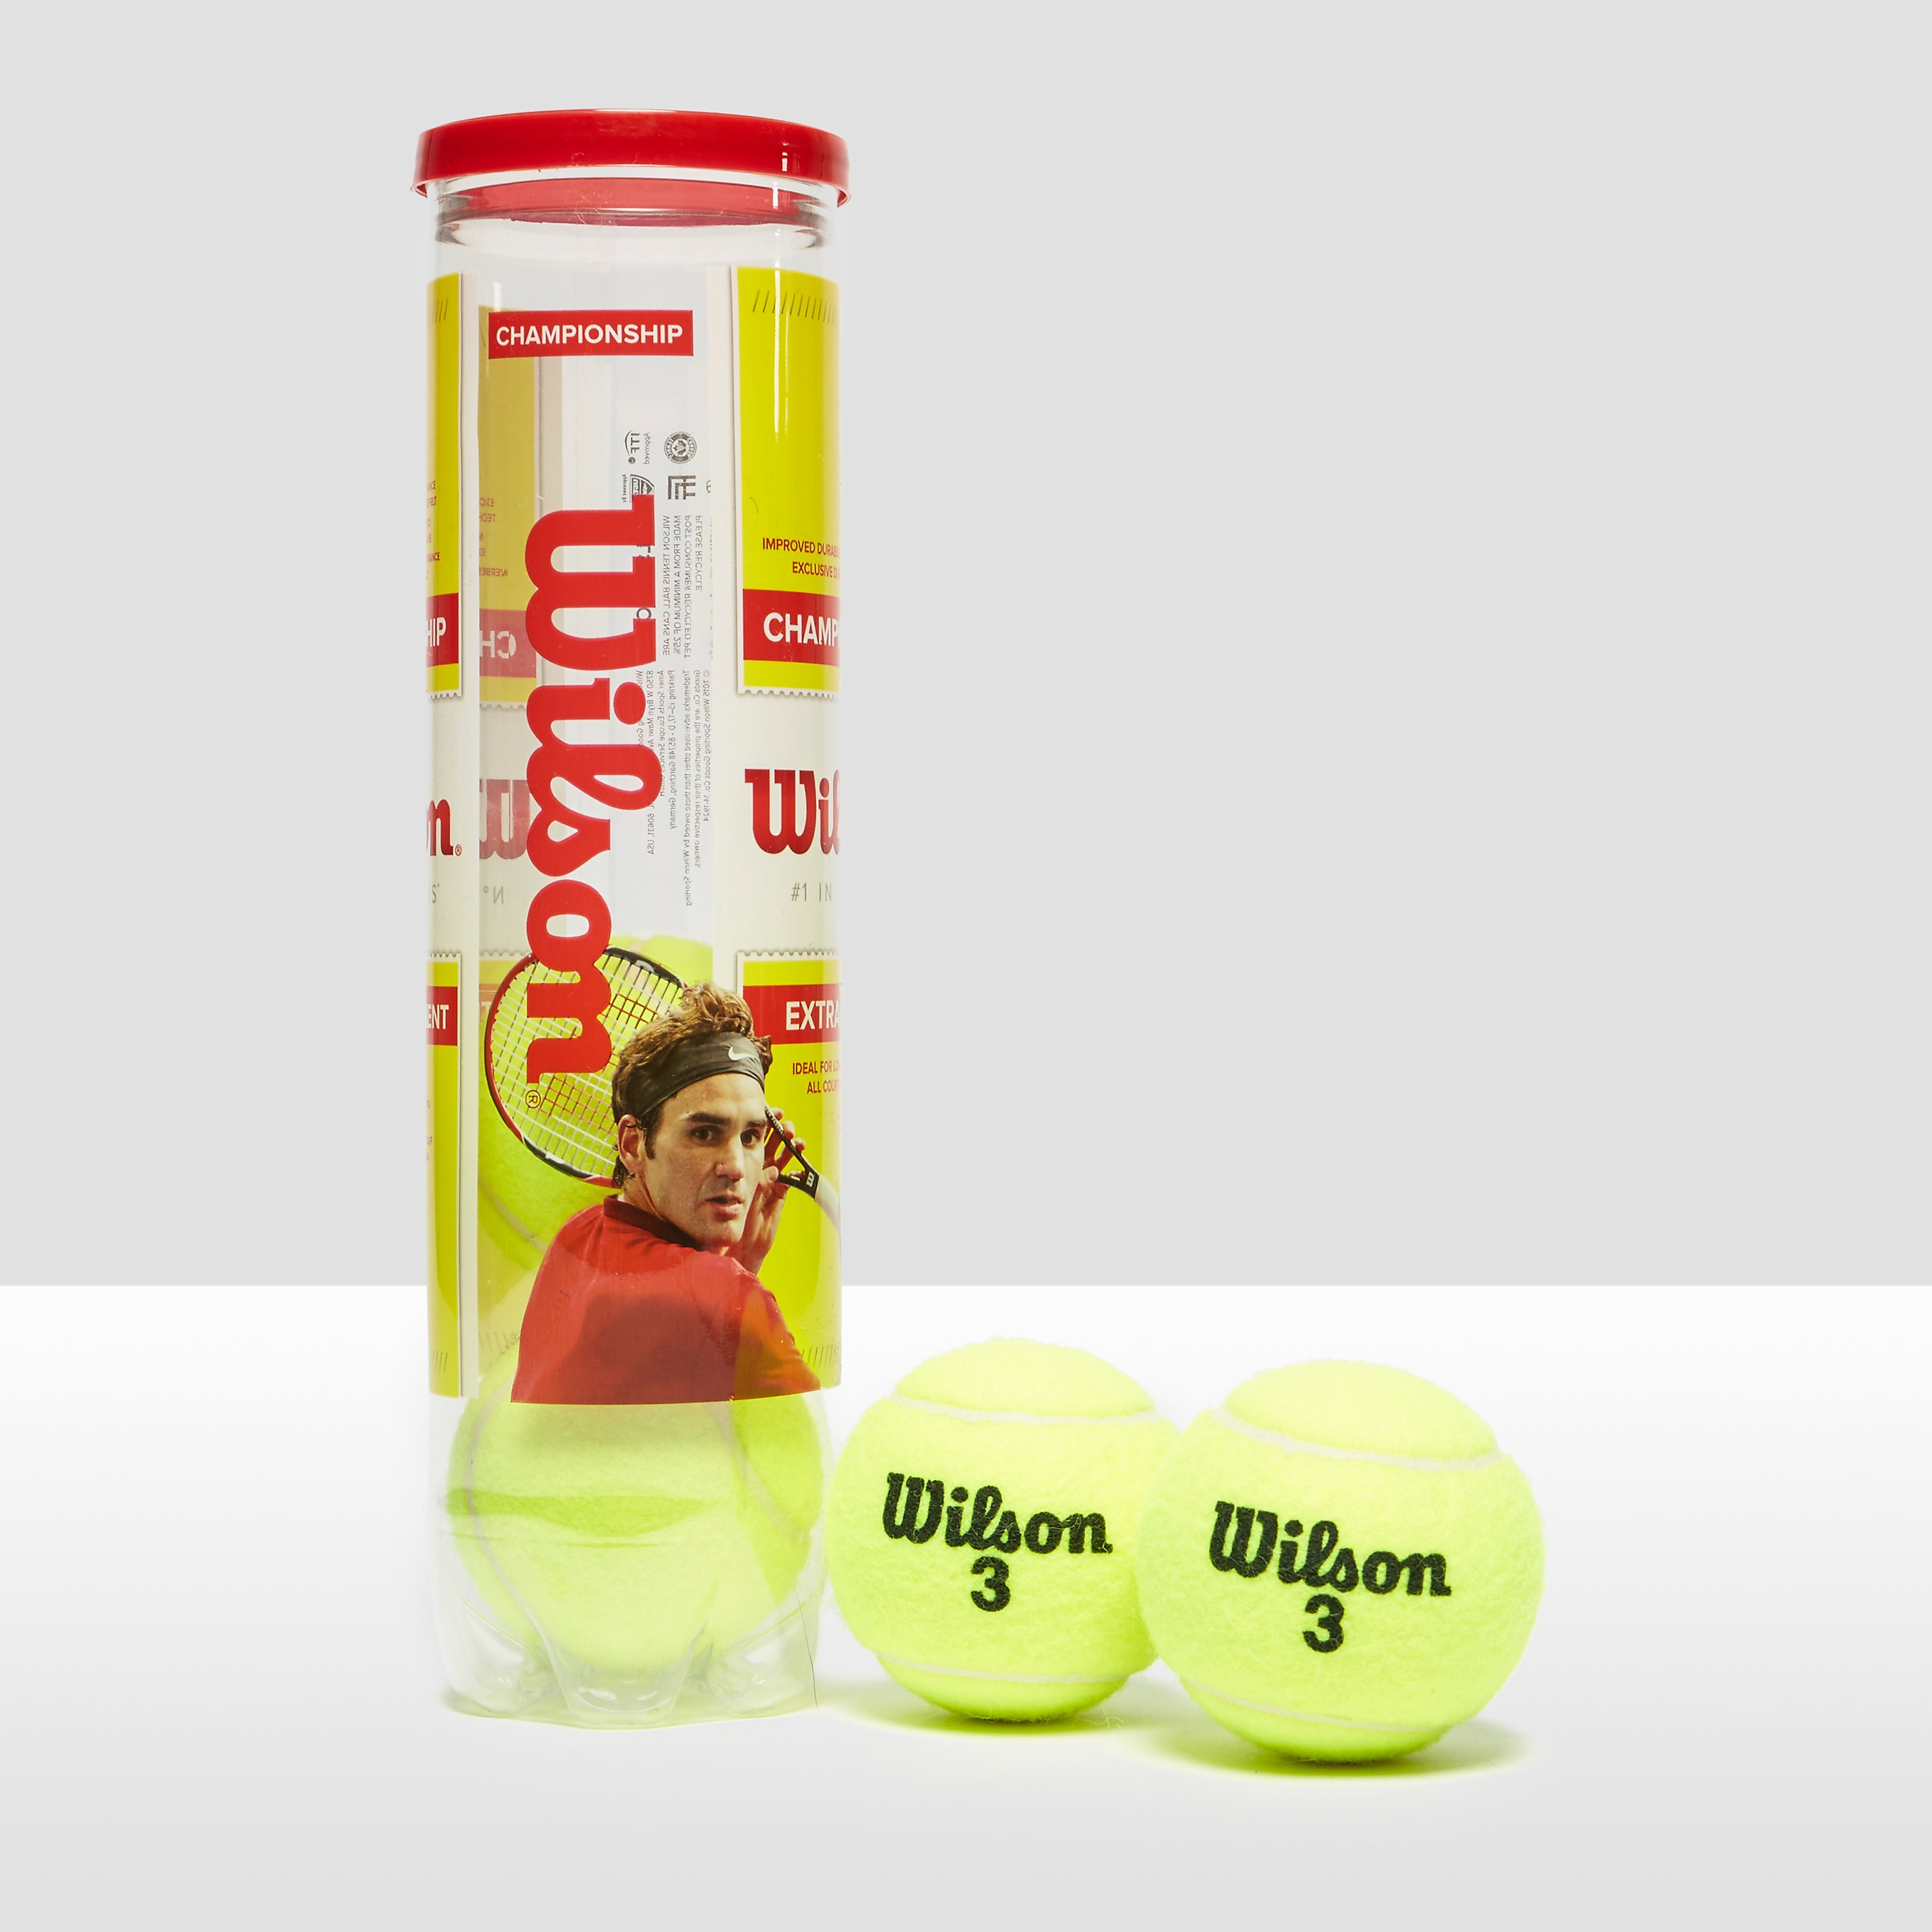 Wilson Championship XD Tennis 4-Ball Can Case